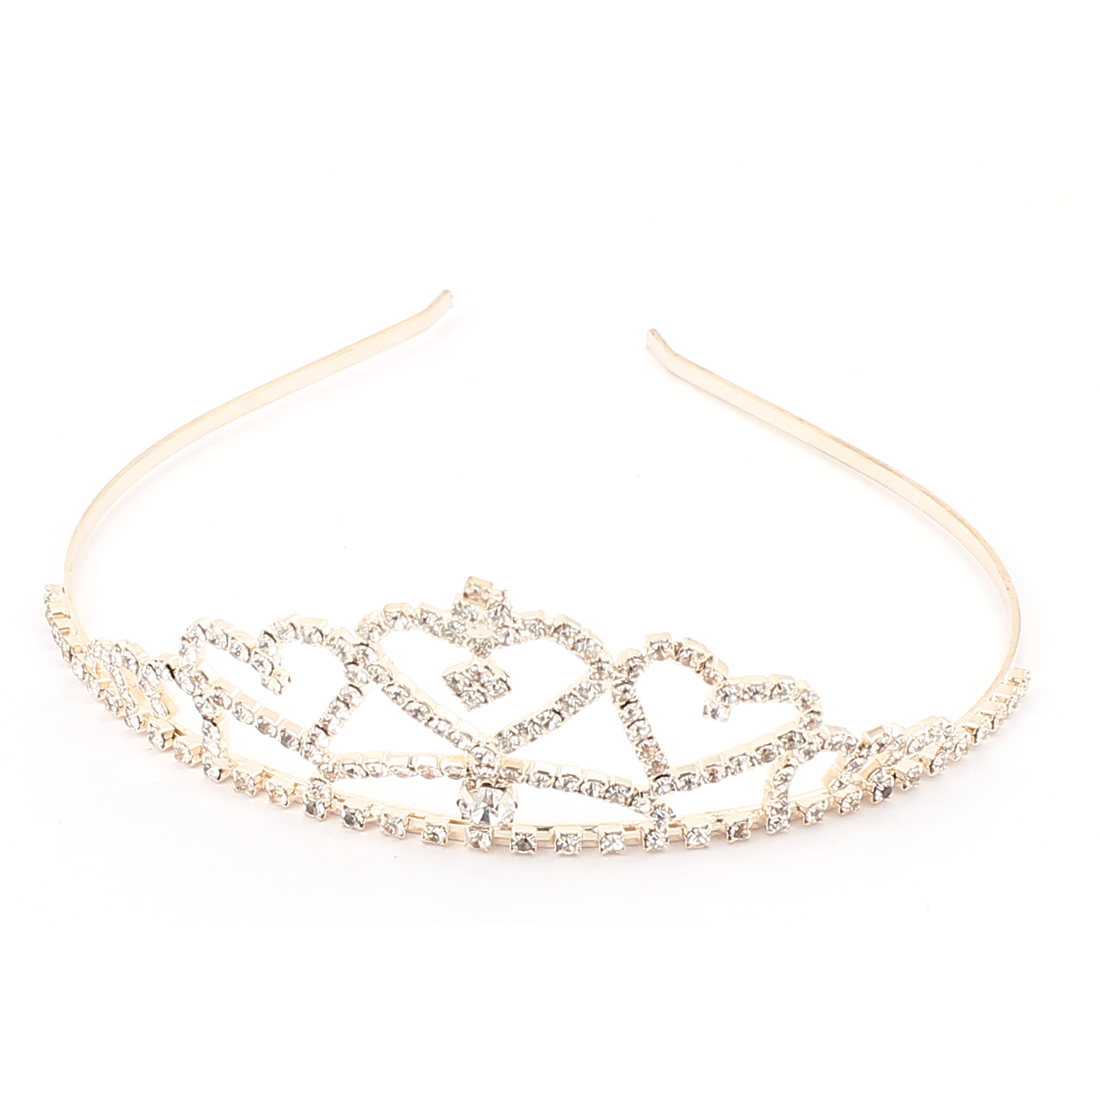 Sparkly Faux Rhinestone Inlaid Crown Shaped Hair Hoop Ornament for Lady